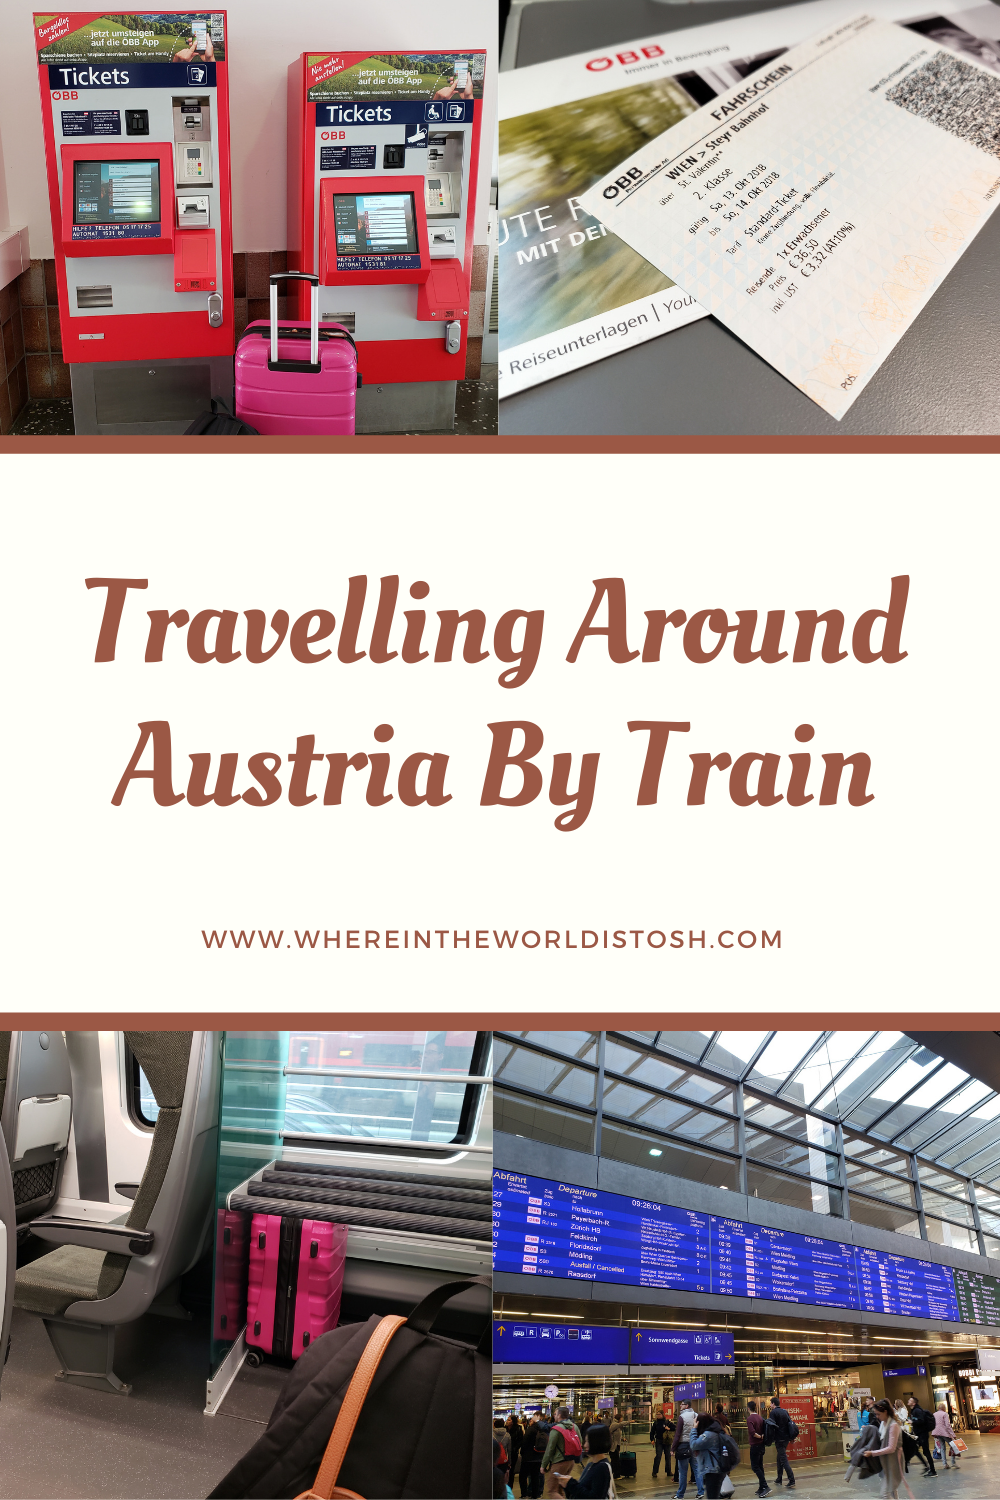 Travelling Around Austria By Train